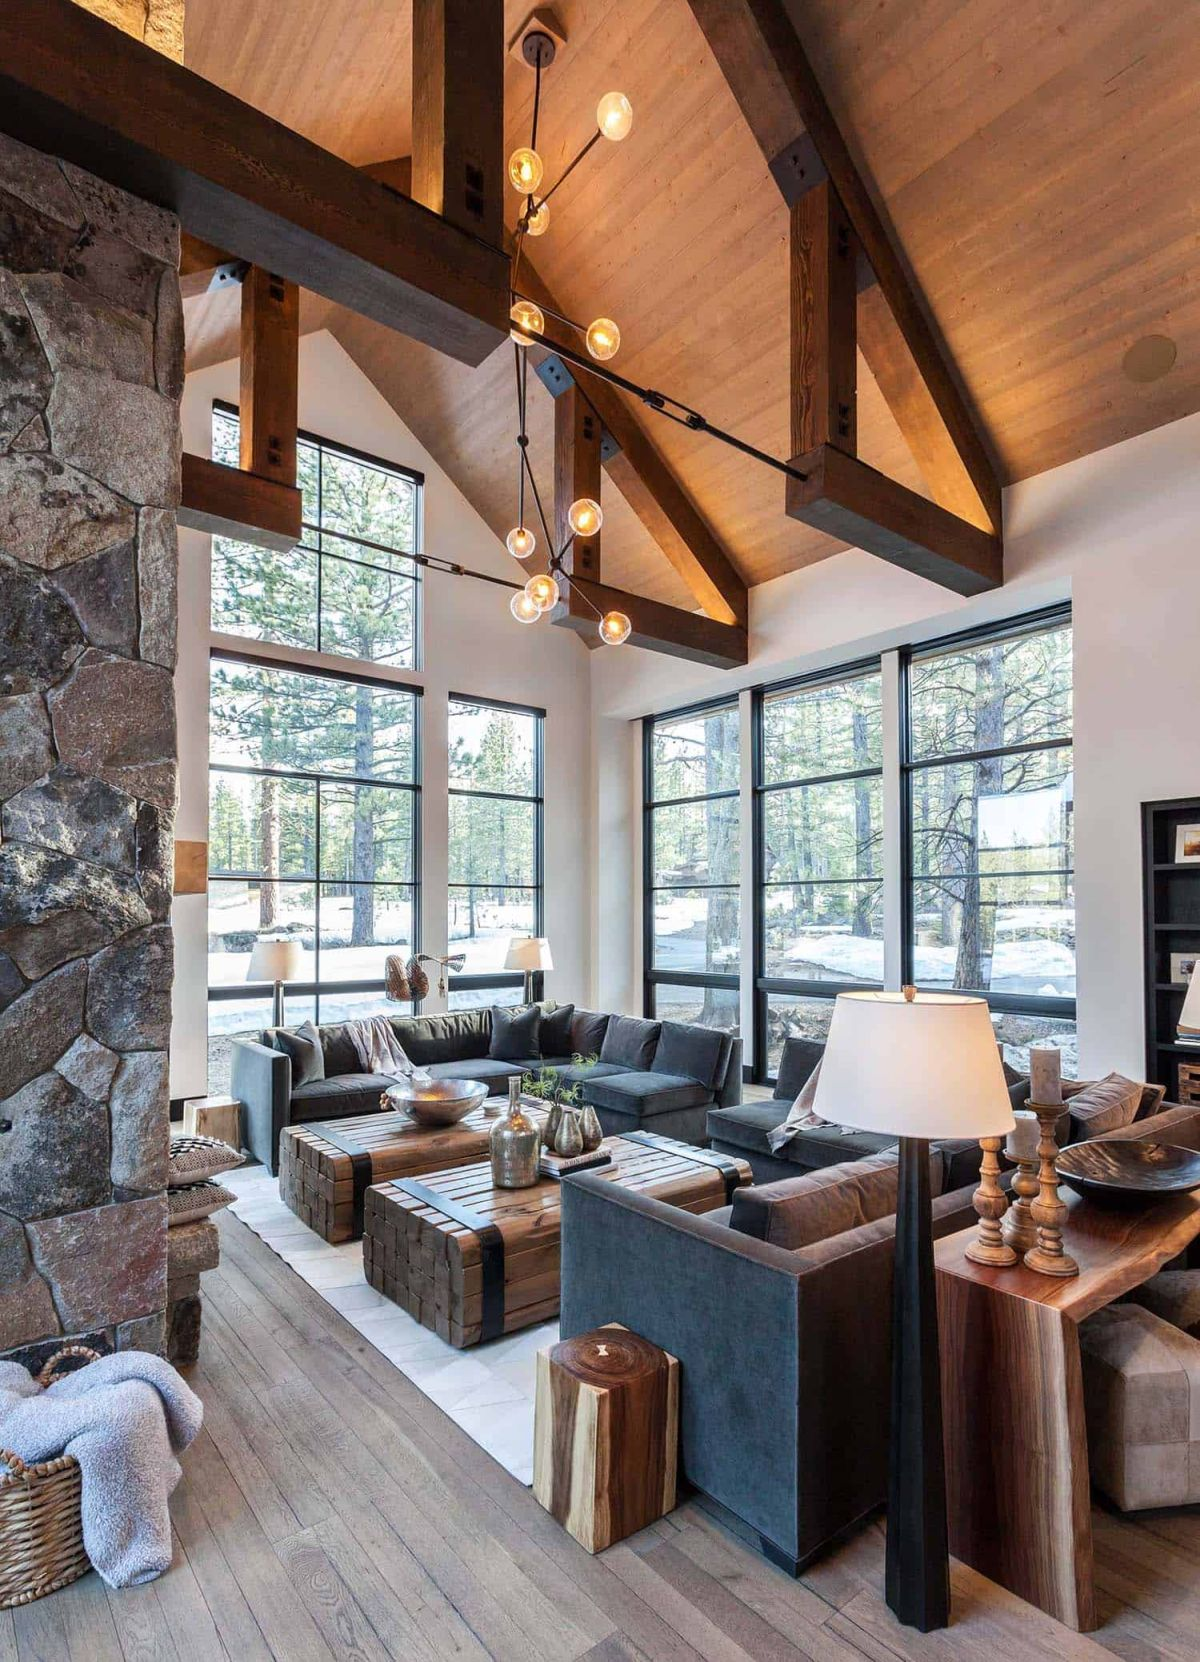 1560338048 697 cozy mountain retreat welcomes nature inside its charming rooms - Cozy Mountain Retreat Welcomes Nature Inside Its Charming Rooms